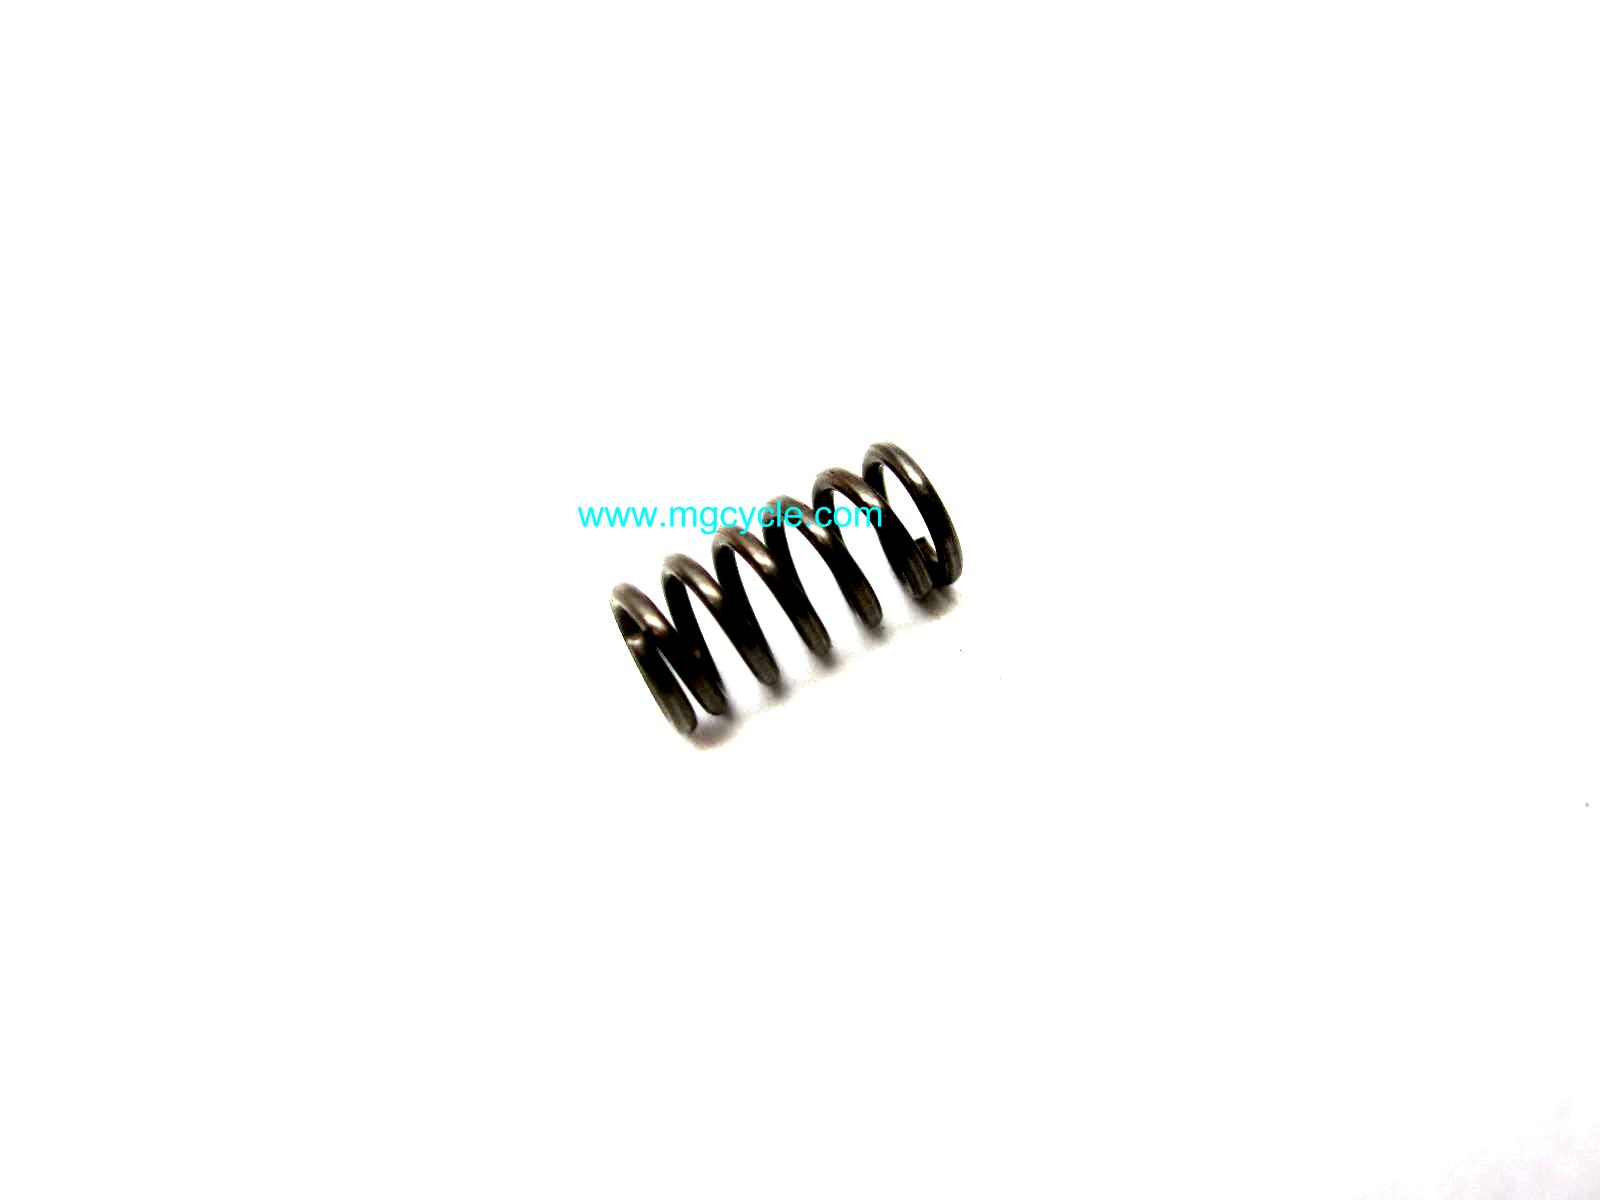 Dellorto mixture screw spring